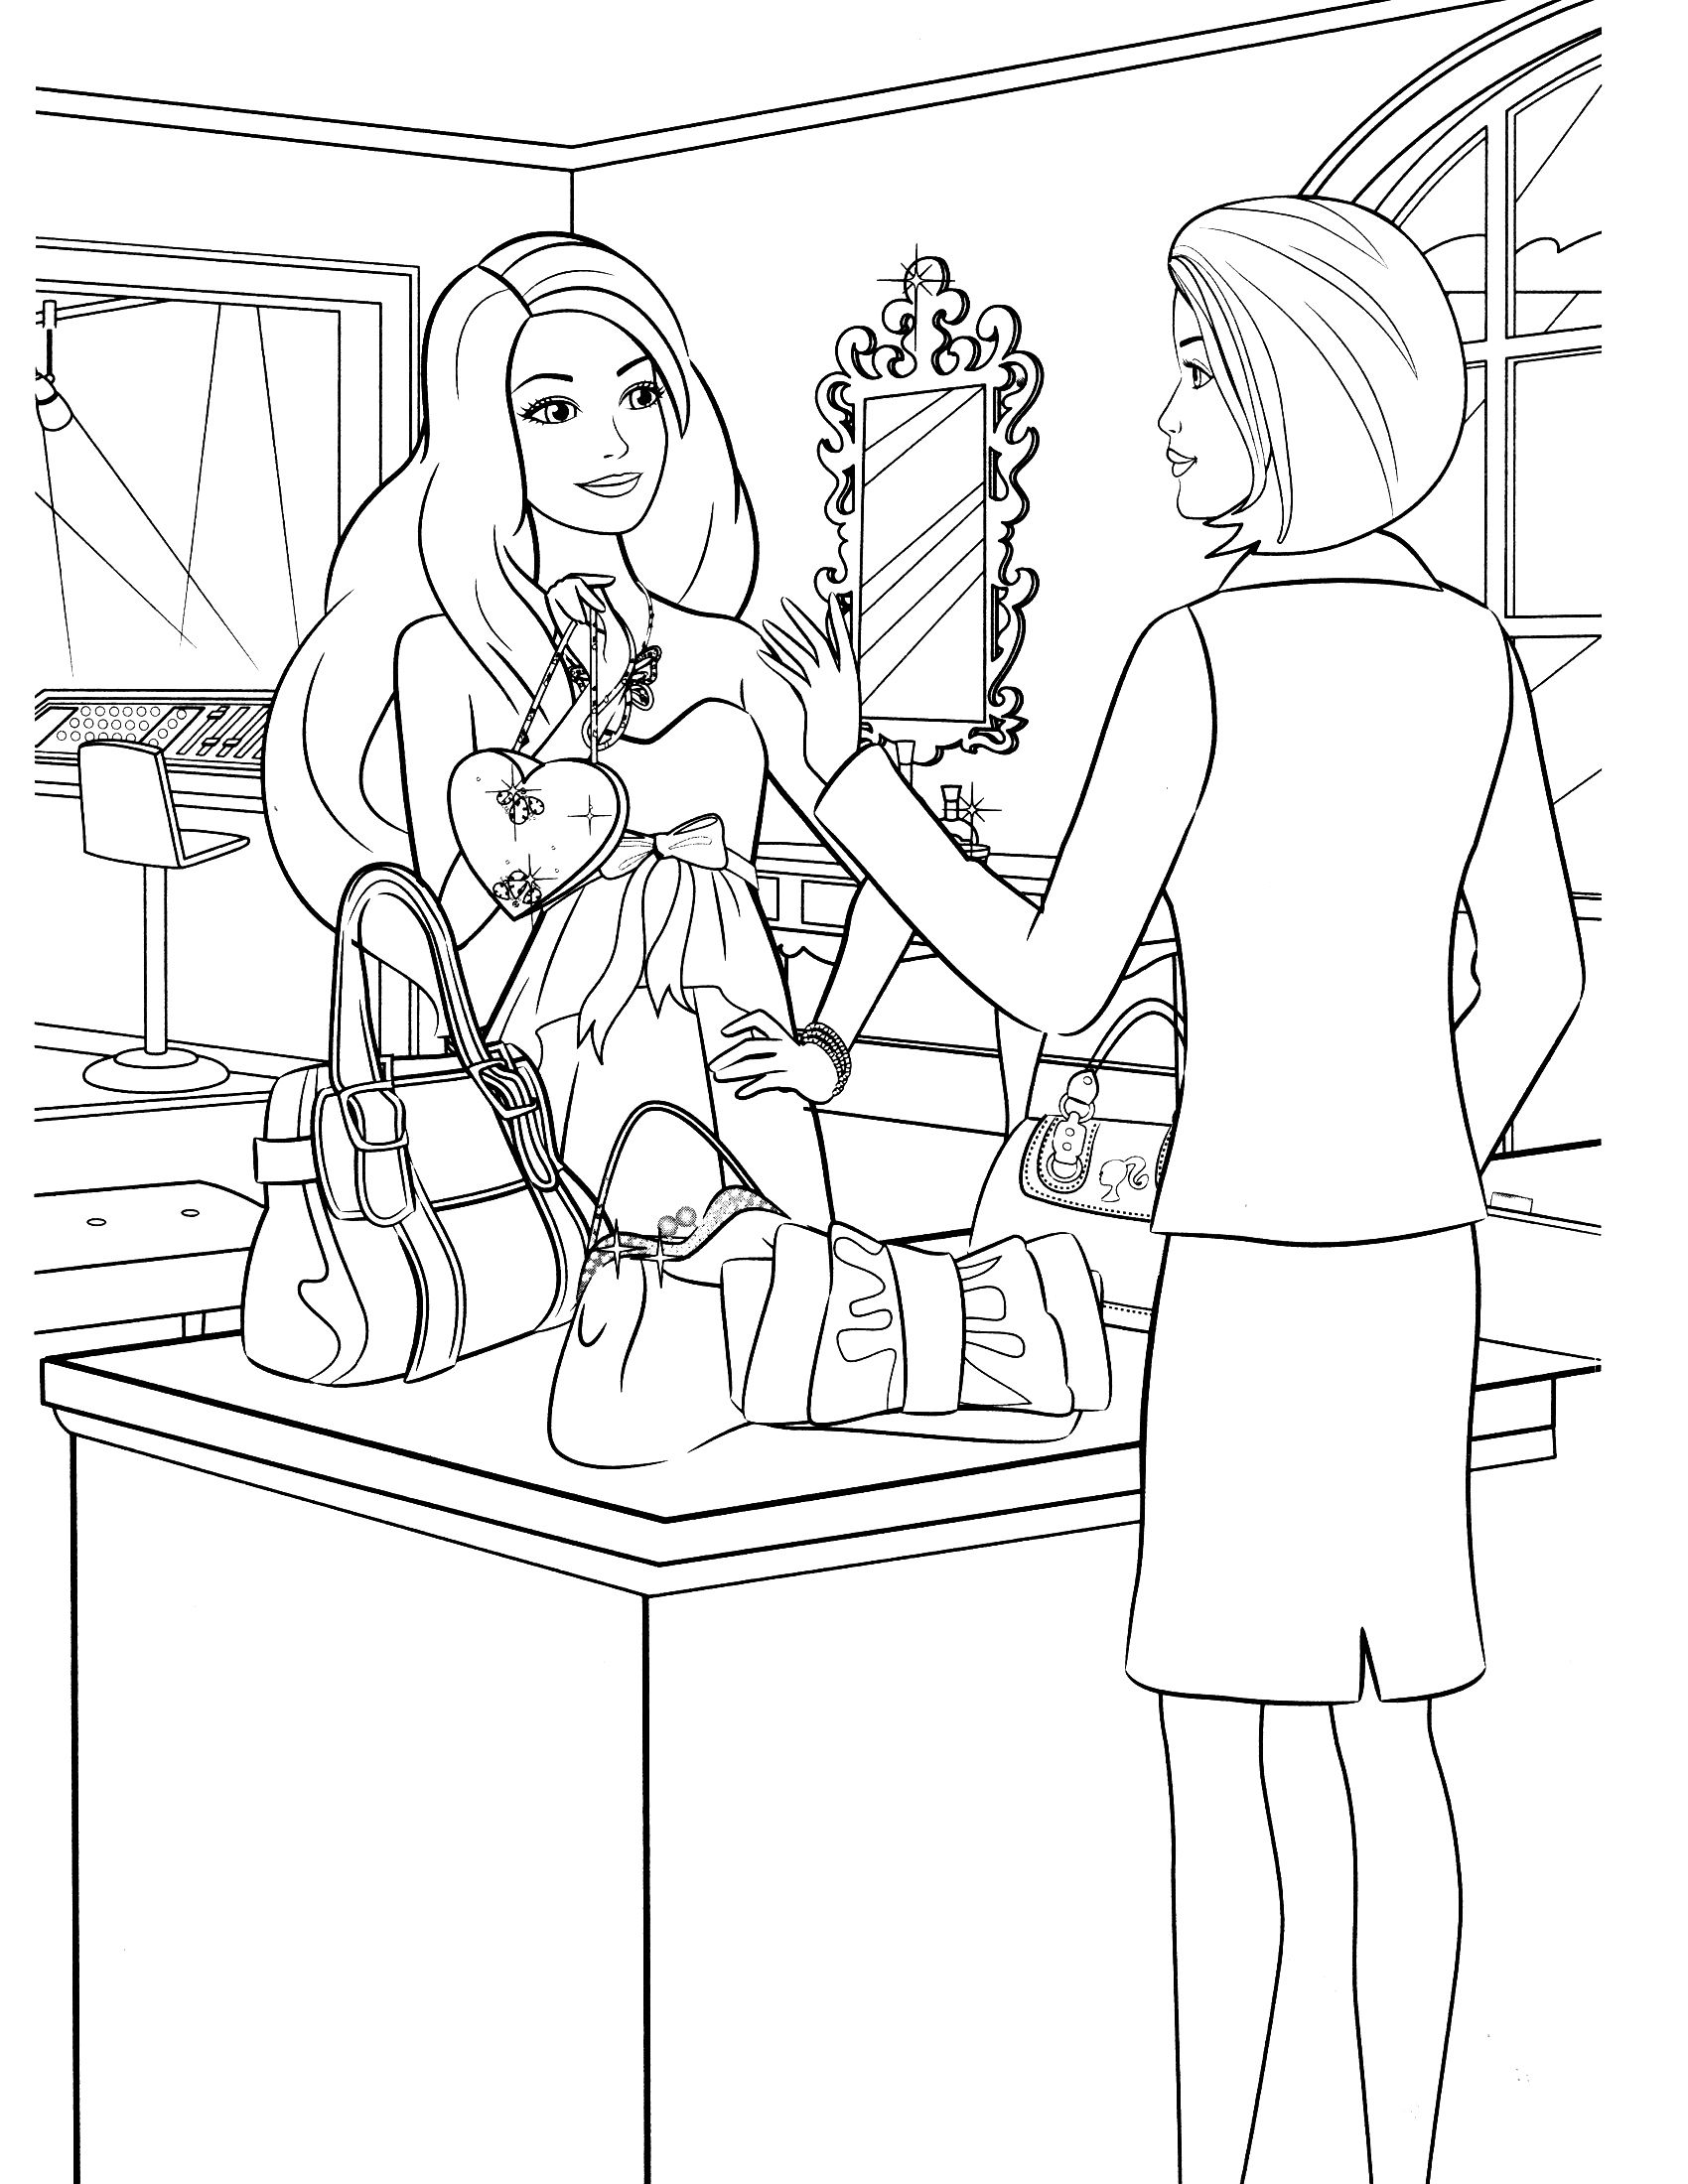 barbie coloring pages - Google-søgning | DRAWING & COLORING ...